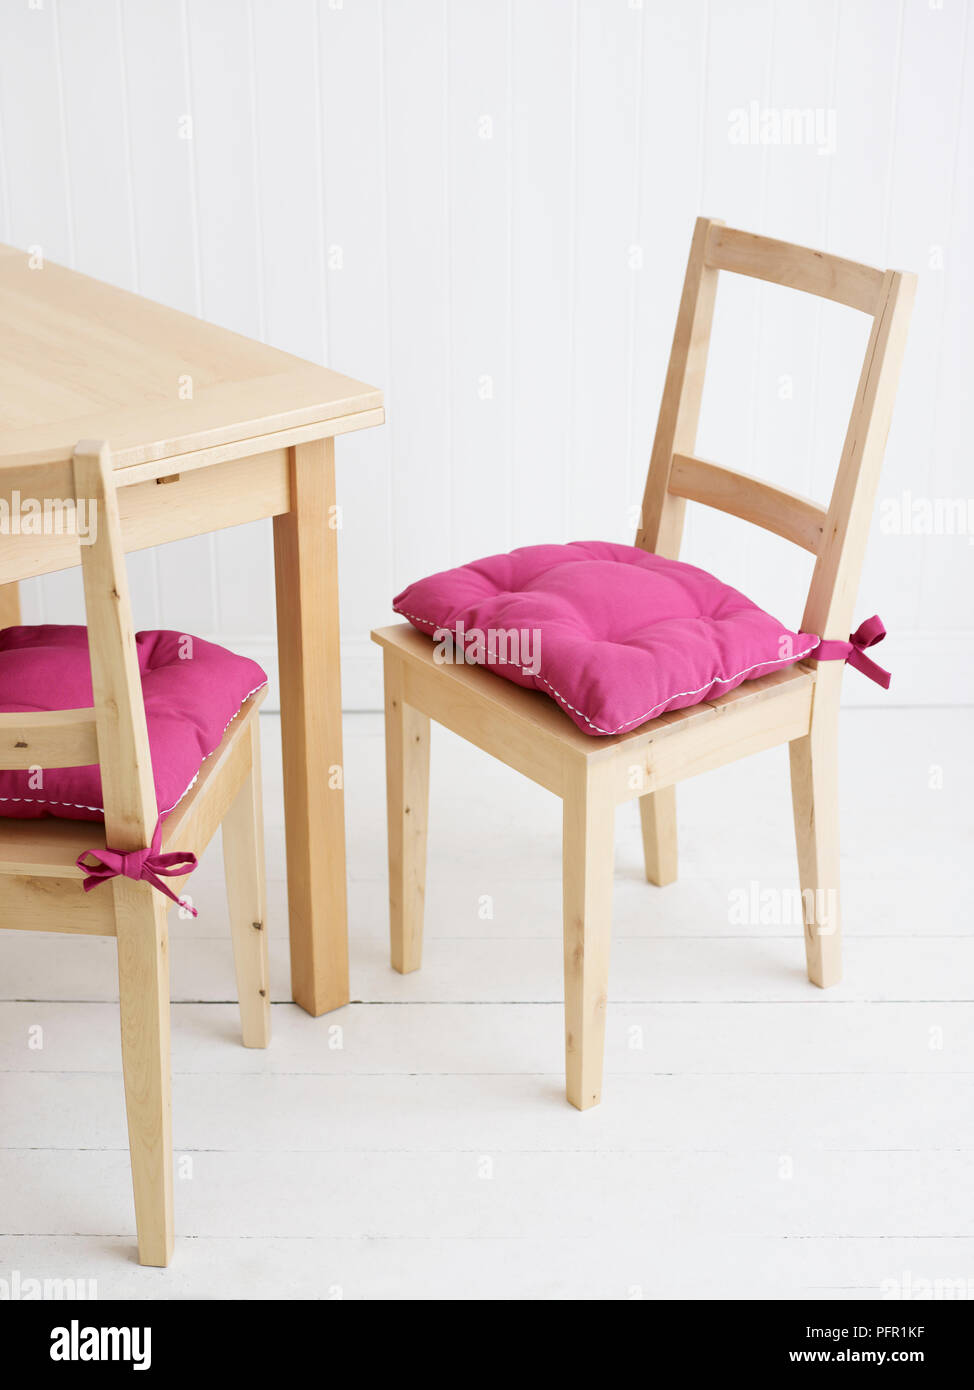 3a61ca1f258f Pink cushions on wooden chairs next to wooden kitchen table on  white-painted wooden floor